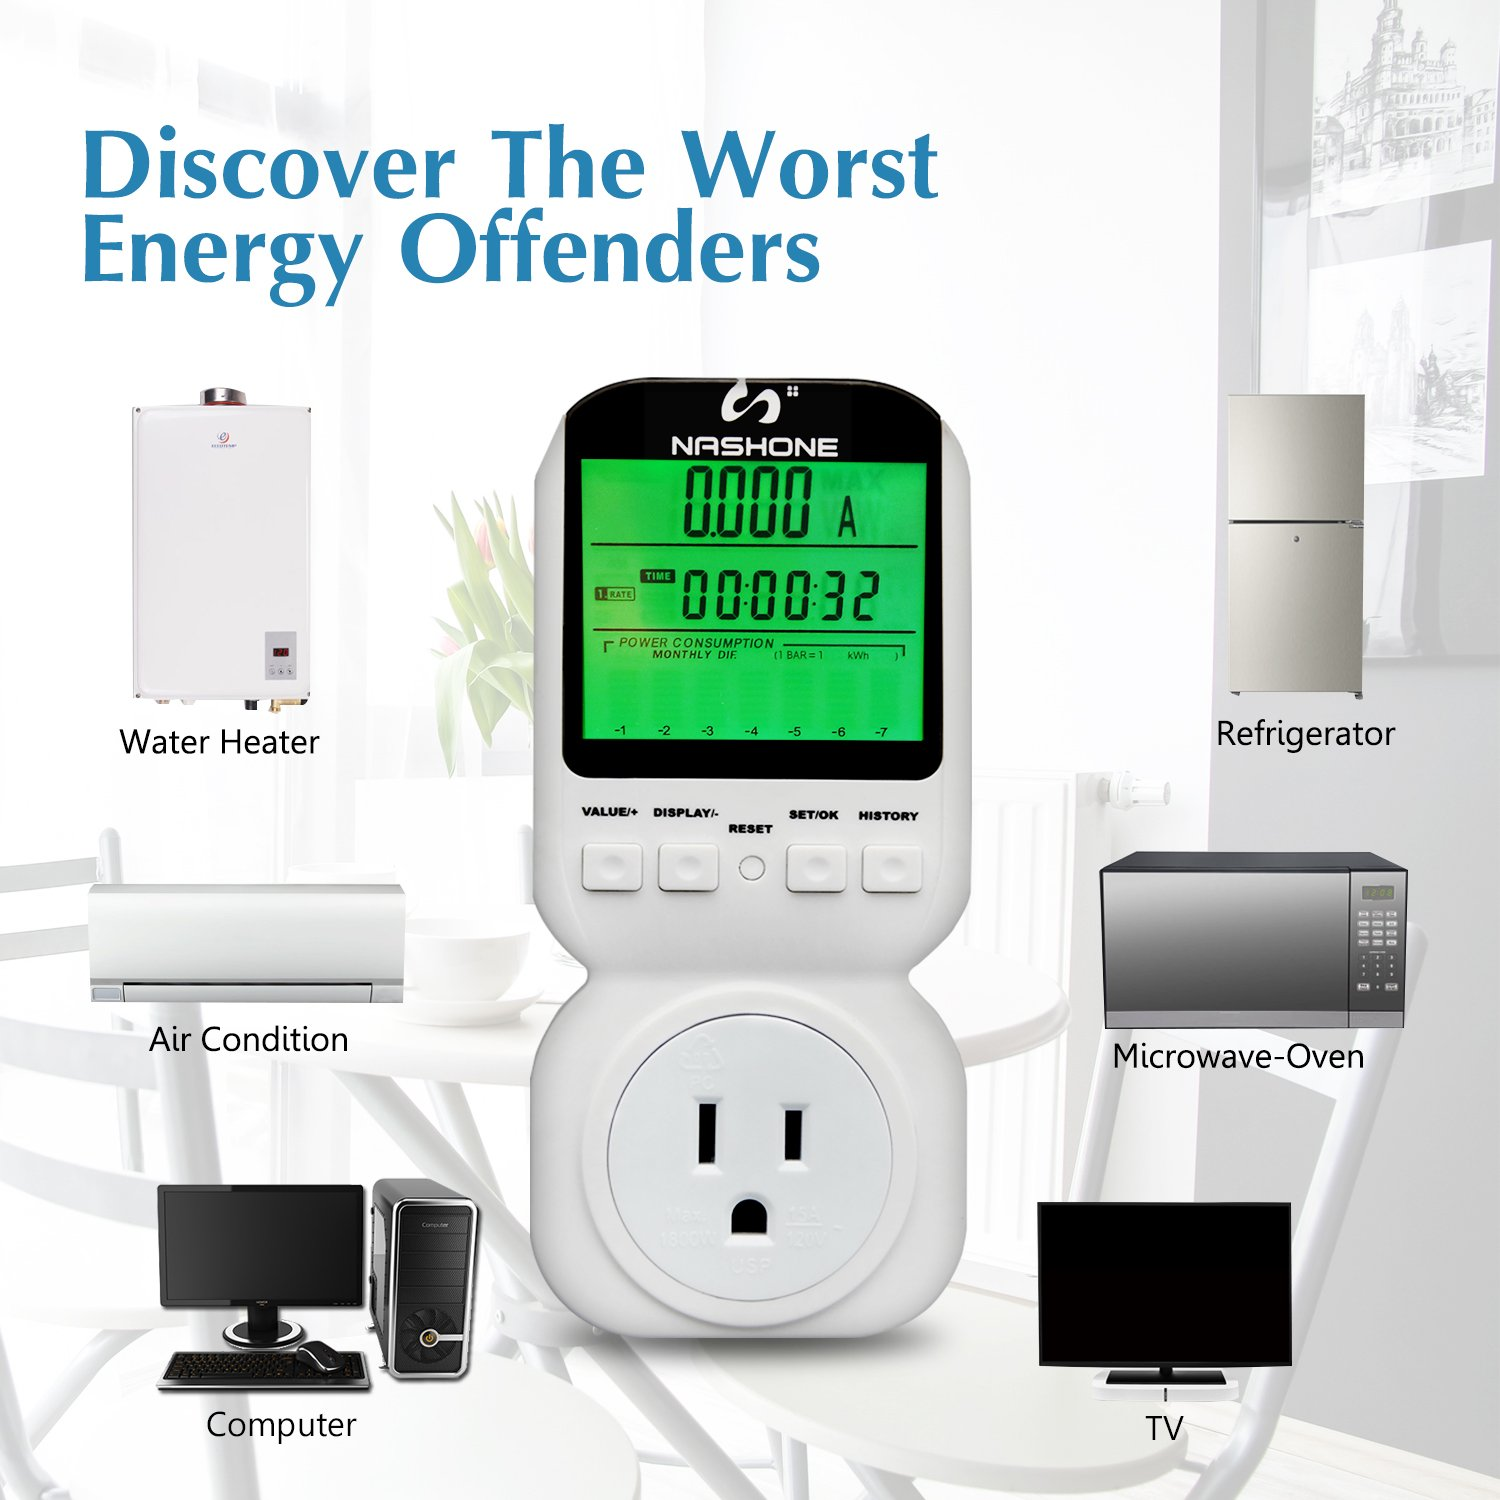 Nashone Digital Electric Power Meter, Smart Home Energy Consumption Monitor,Wall Plugged with Timer LCD Display Overload Alarm by Nashone (Image #5)